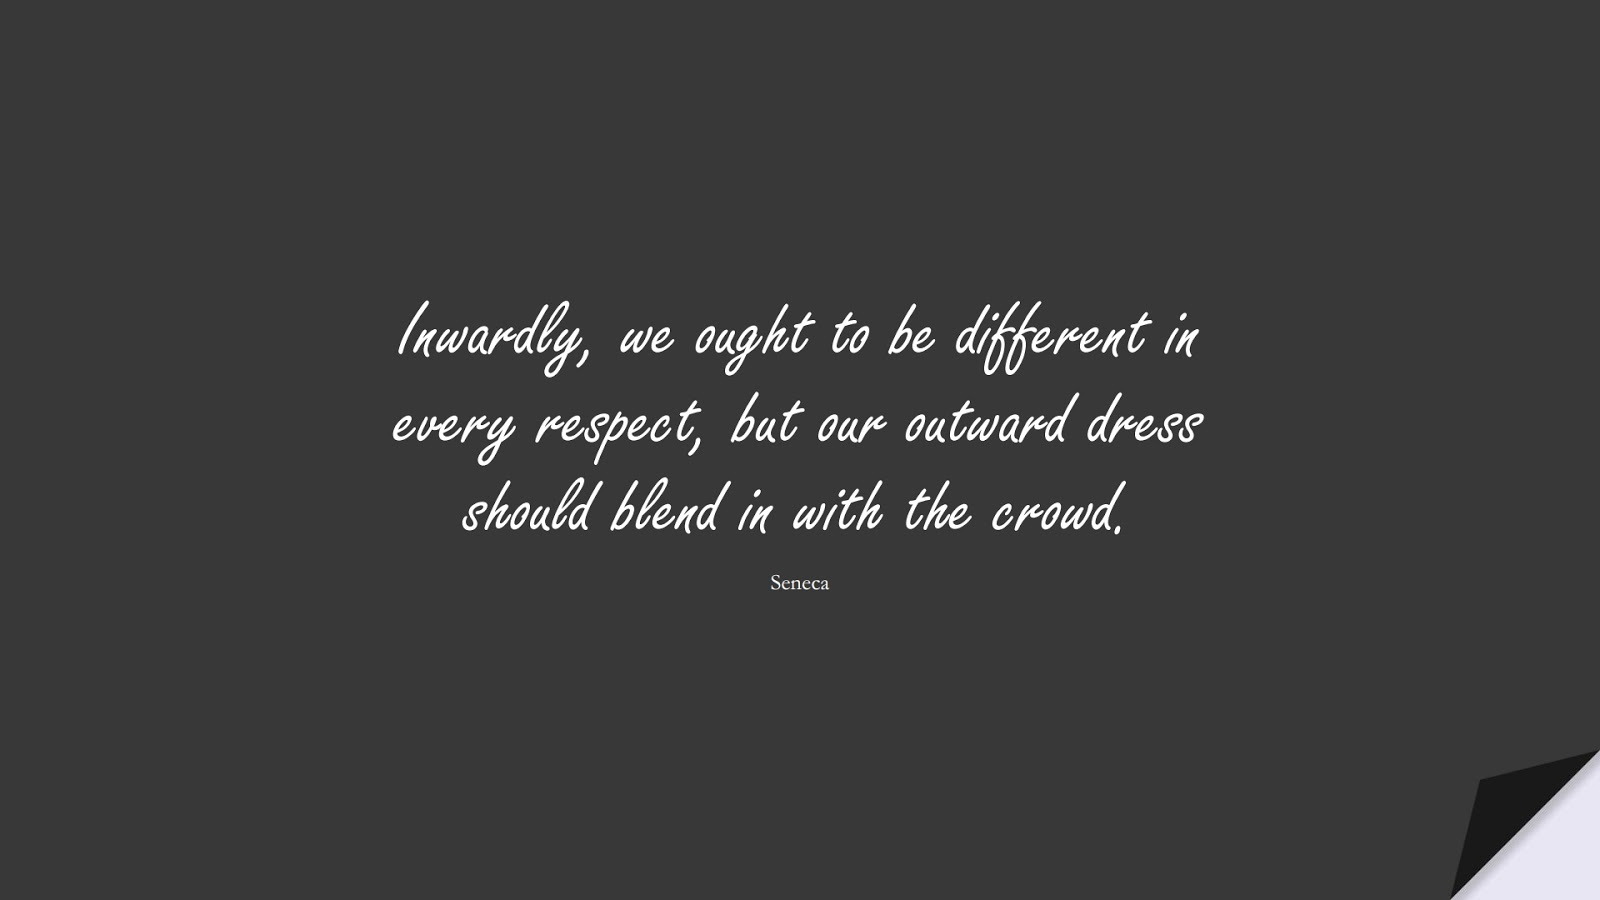 Inwardly, we ought to be different in every respect, but our outward dress should blend in with the crowd. (Seneca);  #StoicQuotes